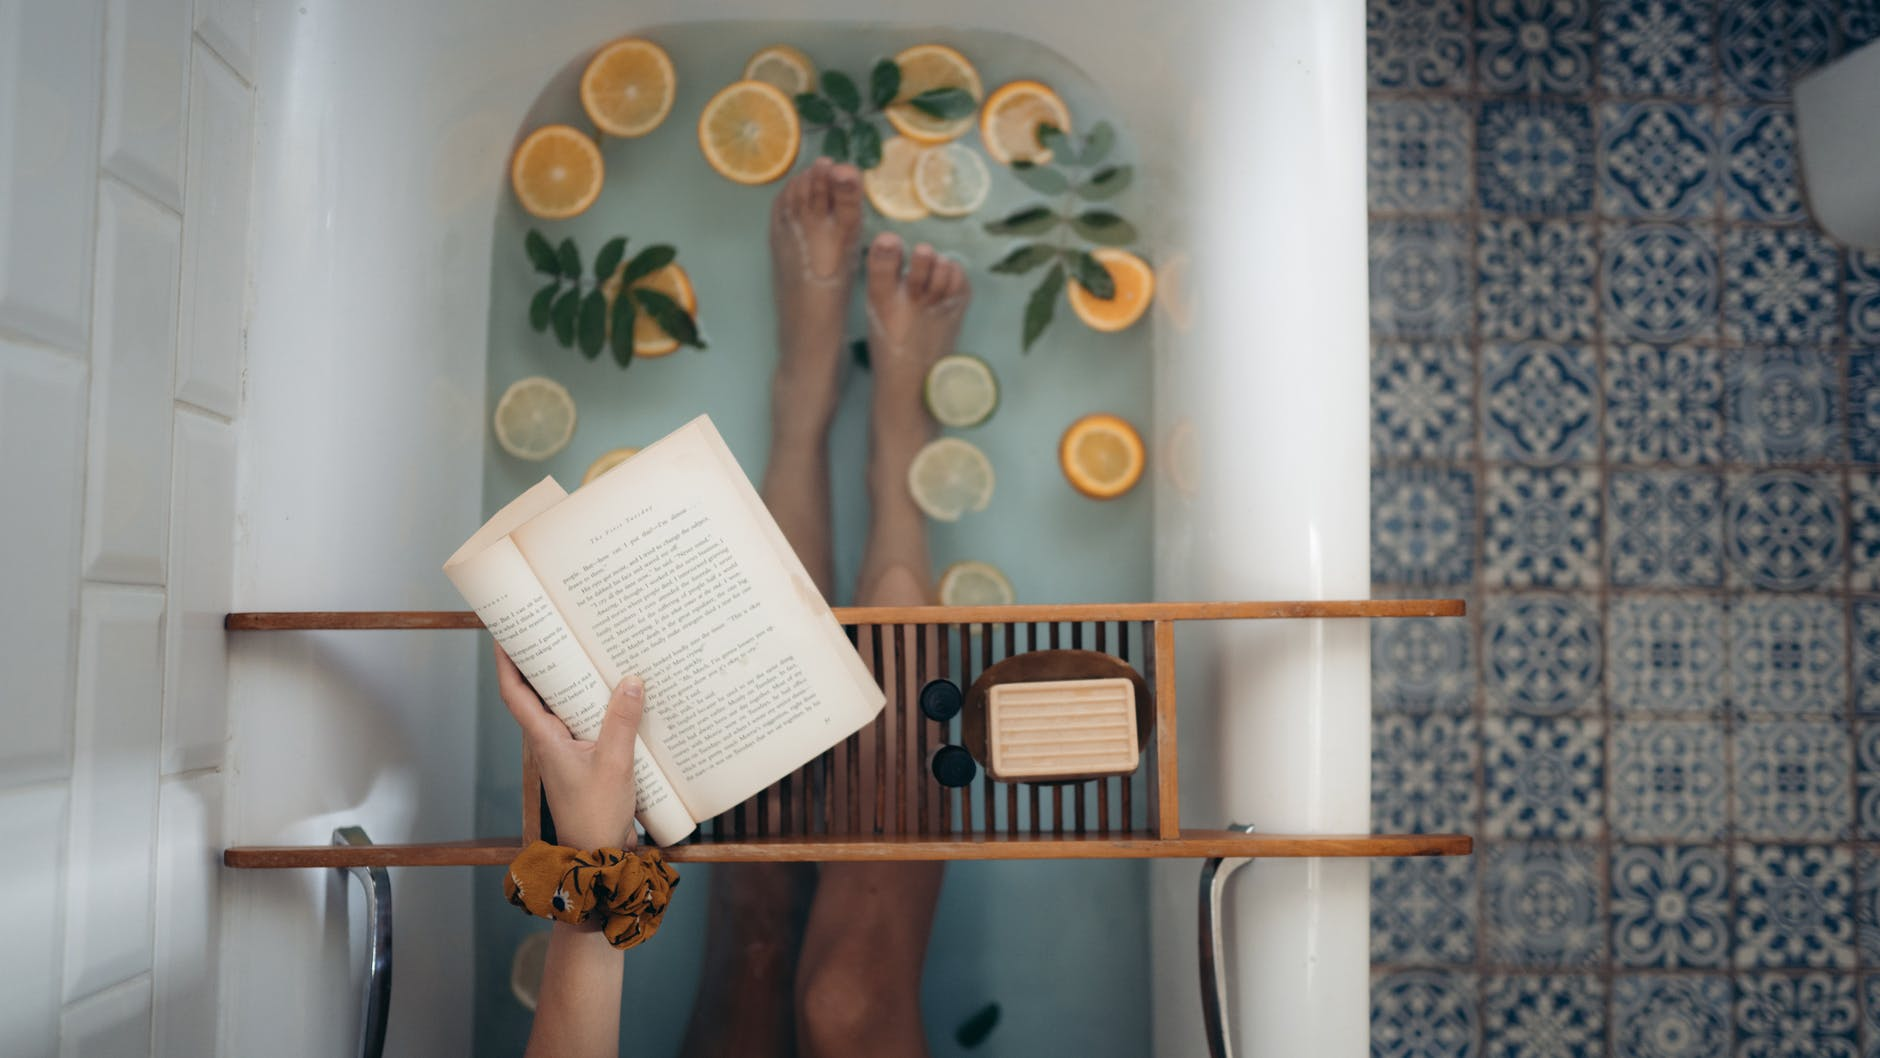 A woman lays in a luxurious bath, reading a book and surrounded by fresh fruit.